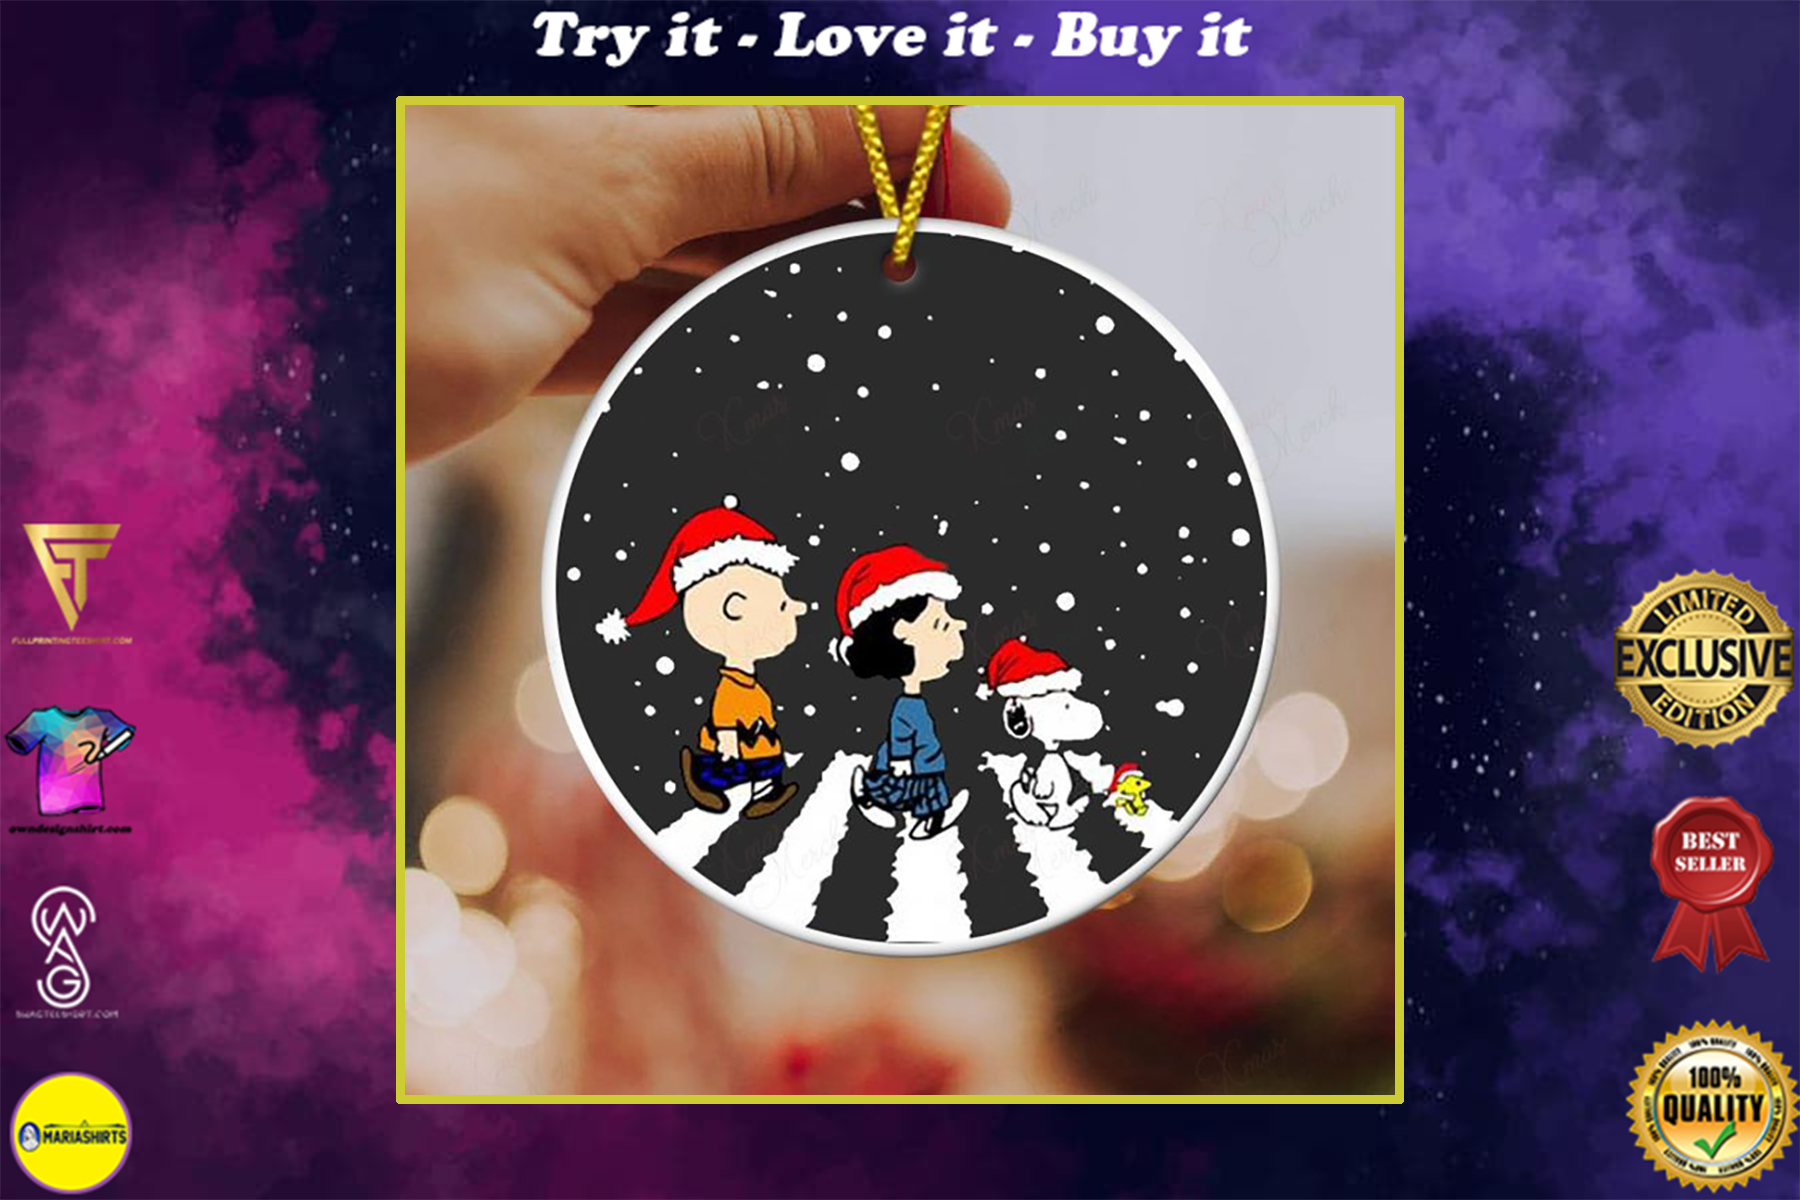 charlie brown and snoopy christmas ornament